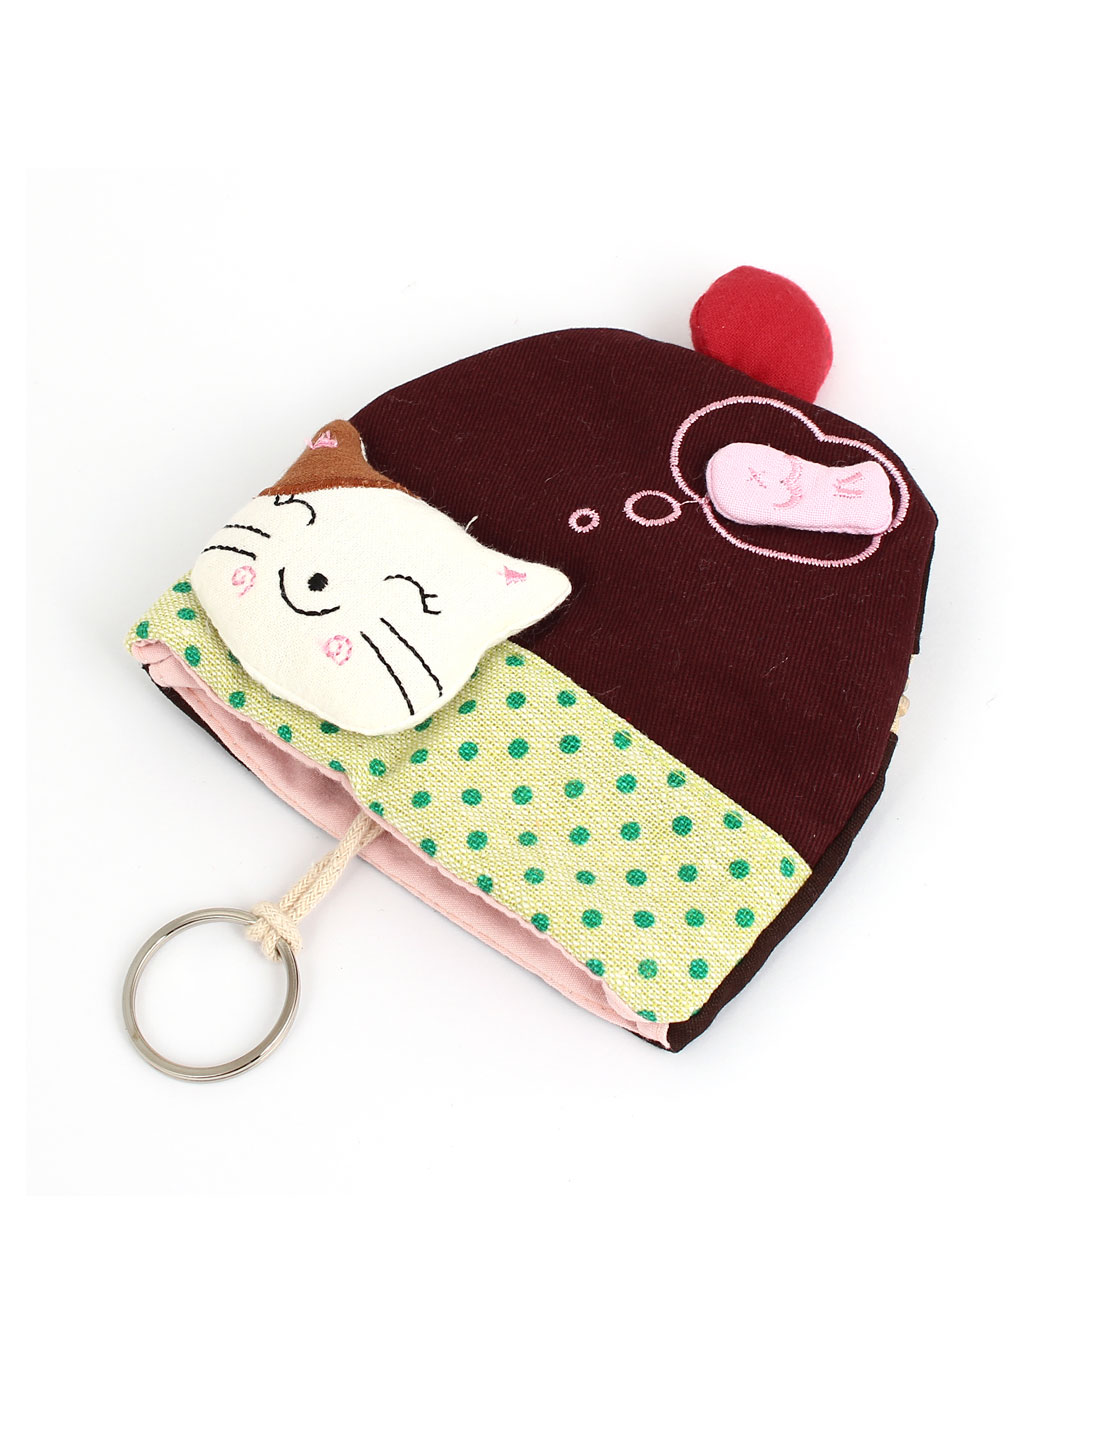 Lady Split Ring Strap Cloth Cat Face Decor Zip Up Coin Key Purse Bag Wallet Pouch Coffee Color